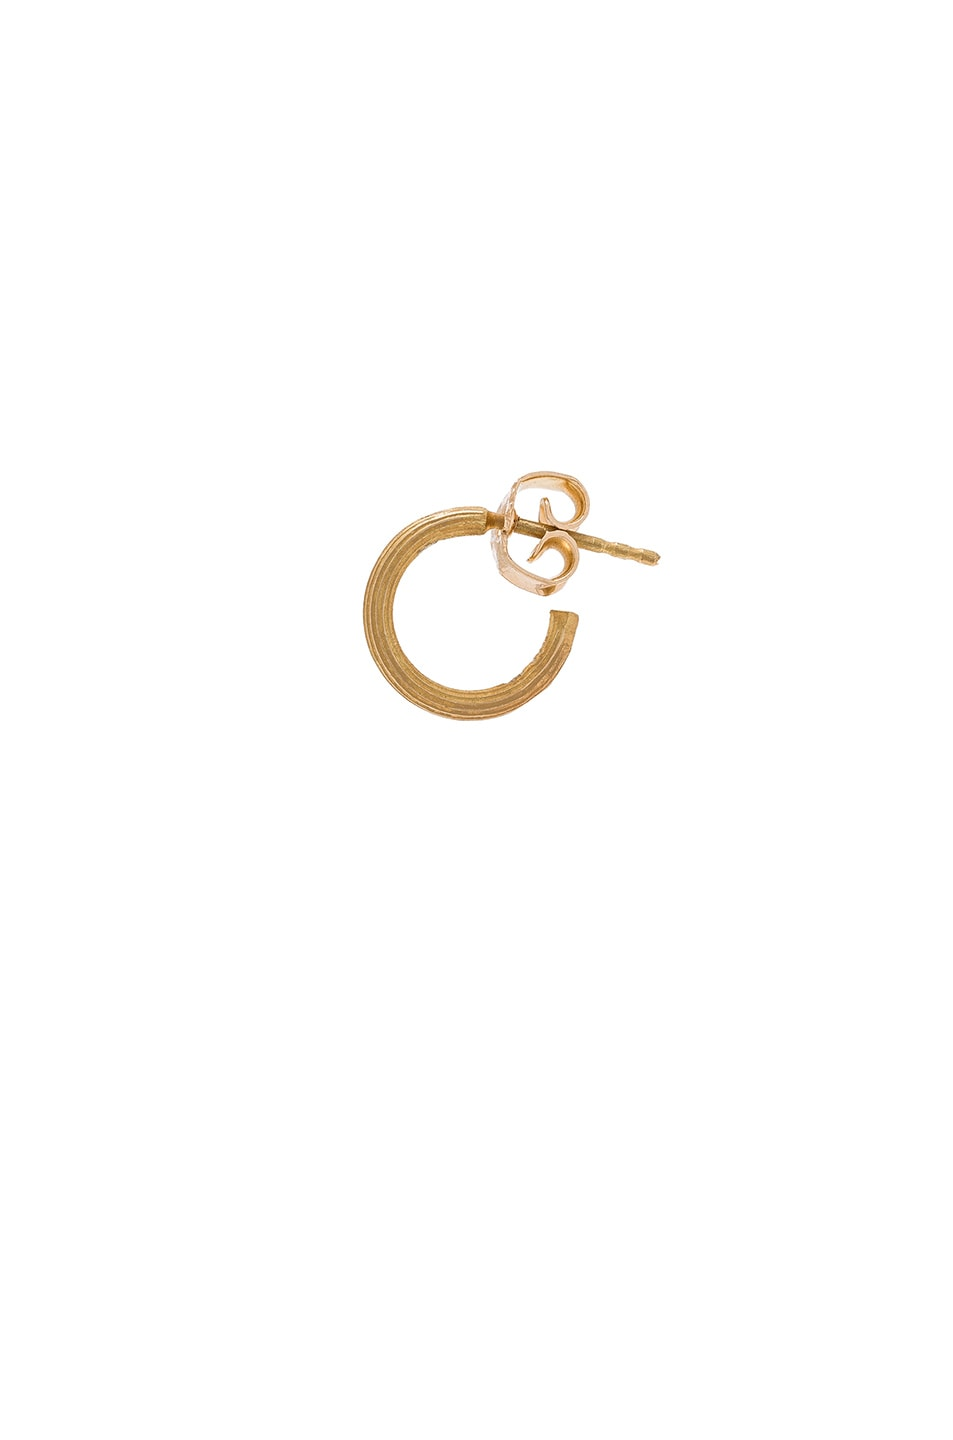 Image 1 of Afin Atelier Small Single Hoop Earring in Gold